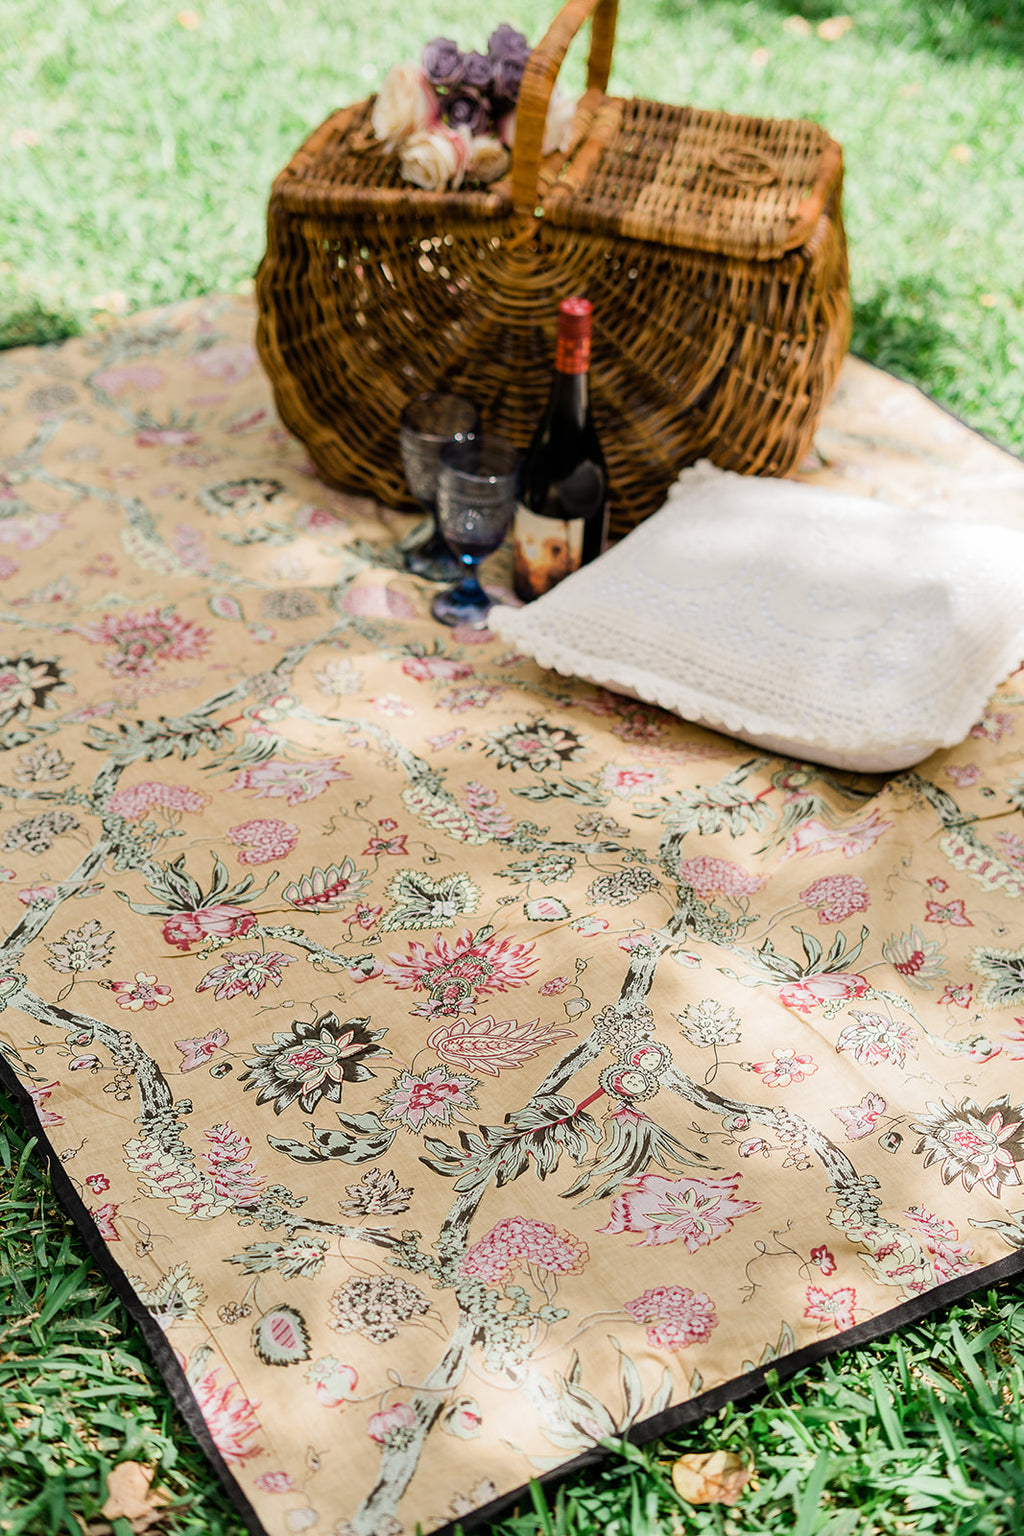 Garden Party Picnic blanket - Amber Gold